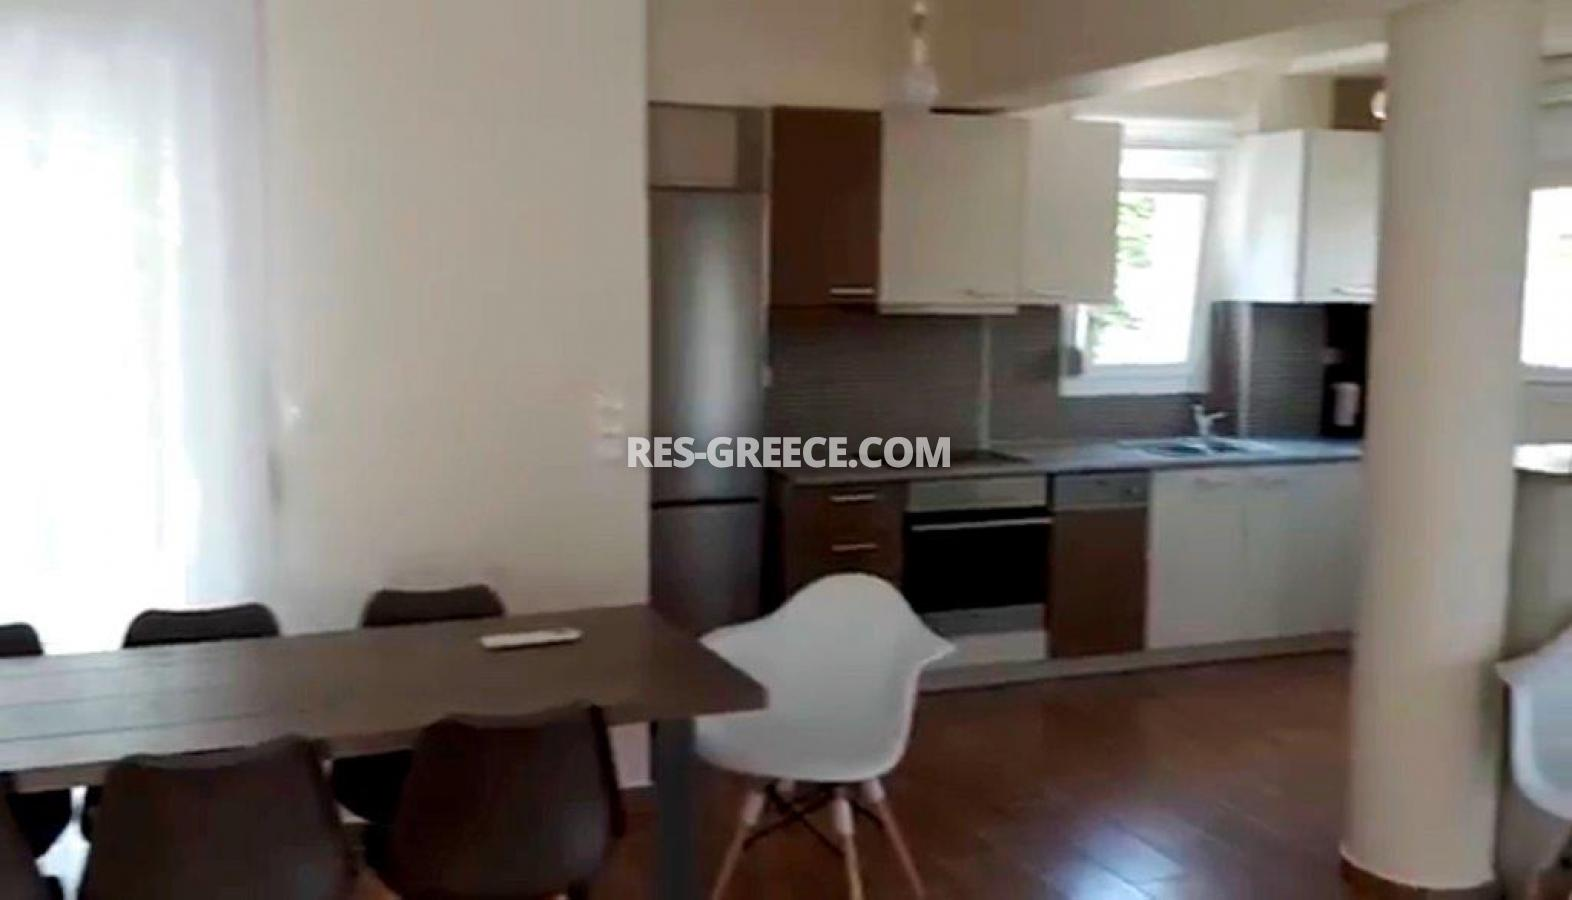 Palia Agora, Northern Aegean Islands, Greece - new house for sale in the heart of Thassos town - Photo 5